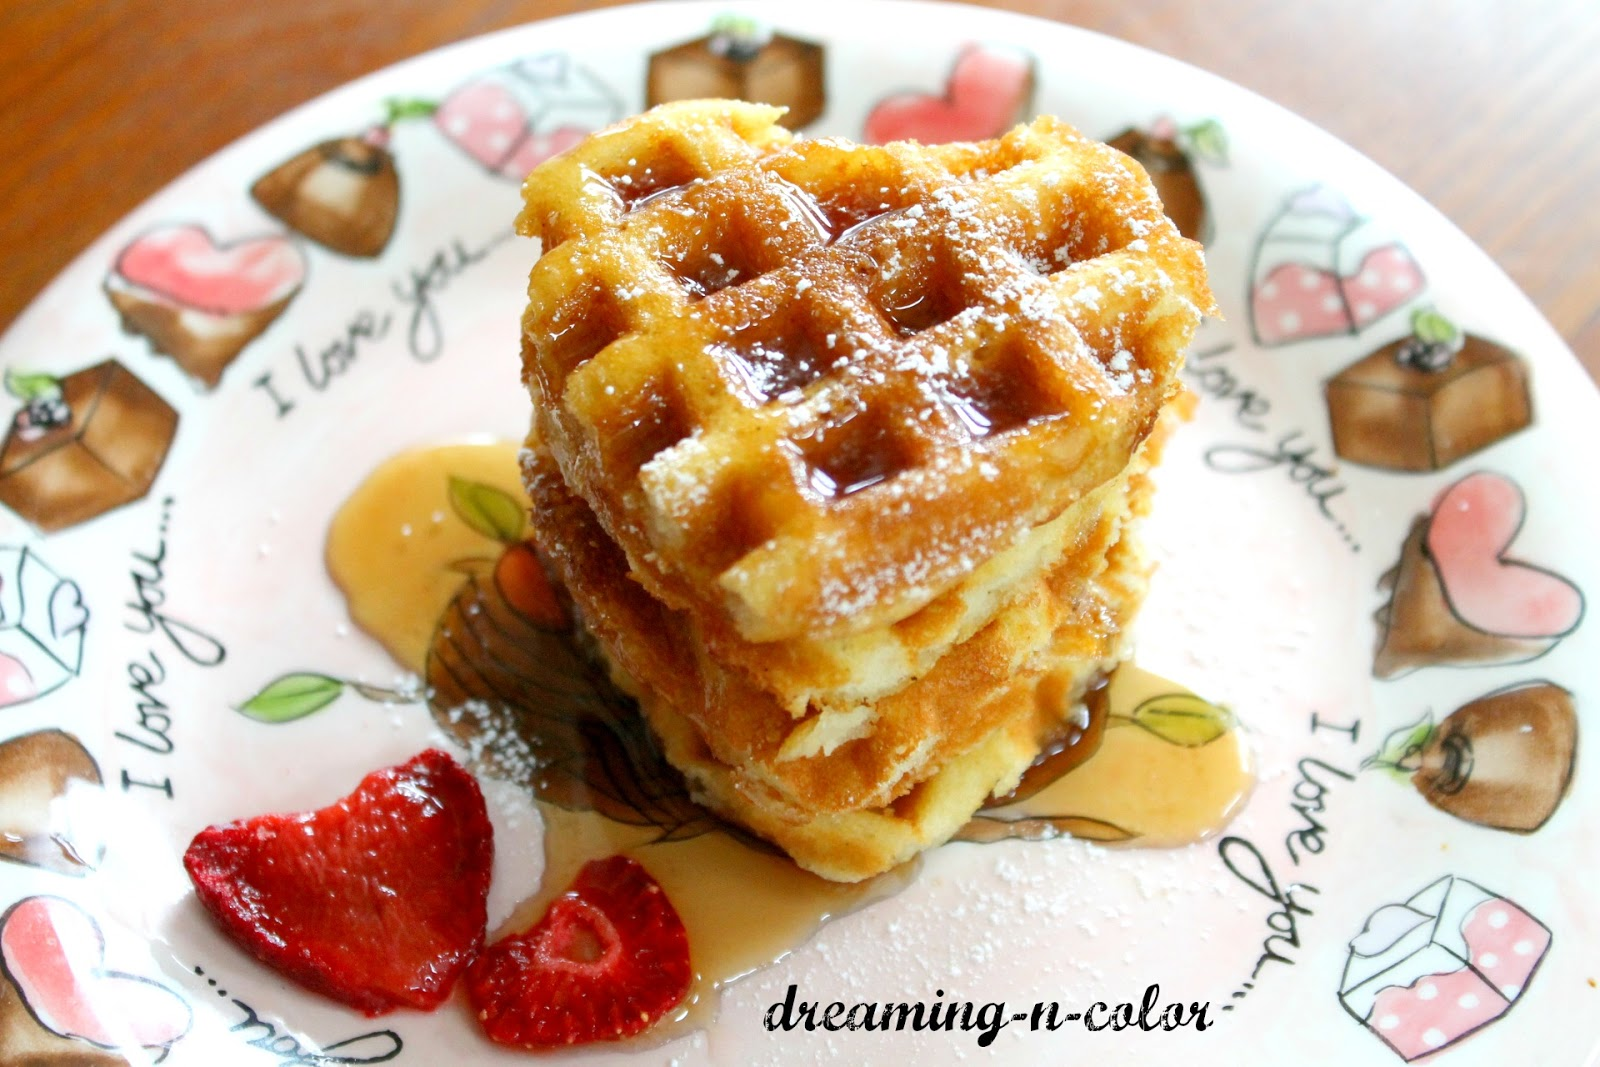 dreamingincolor: Valentine Breakfast {The World's Best Waffles}